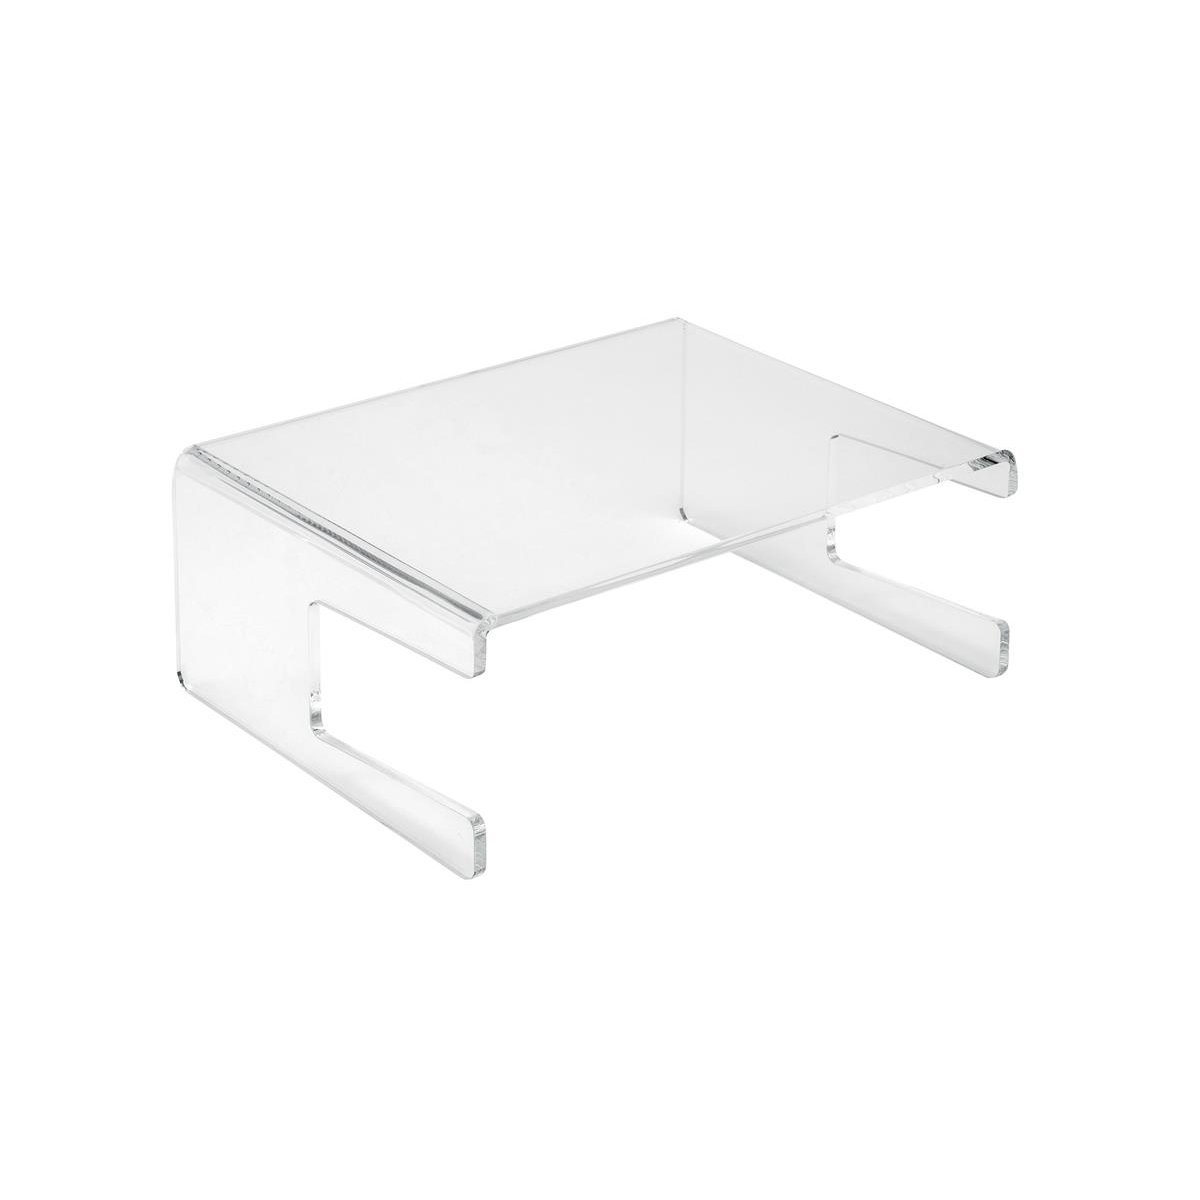 Risers / Stands 5 Star Office Monitor Stand Acrylic Capacity 21inch W300xD230xH120mm Clear